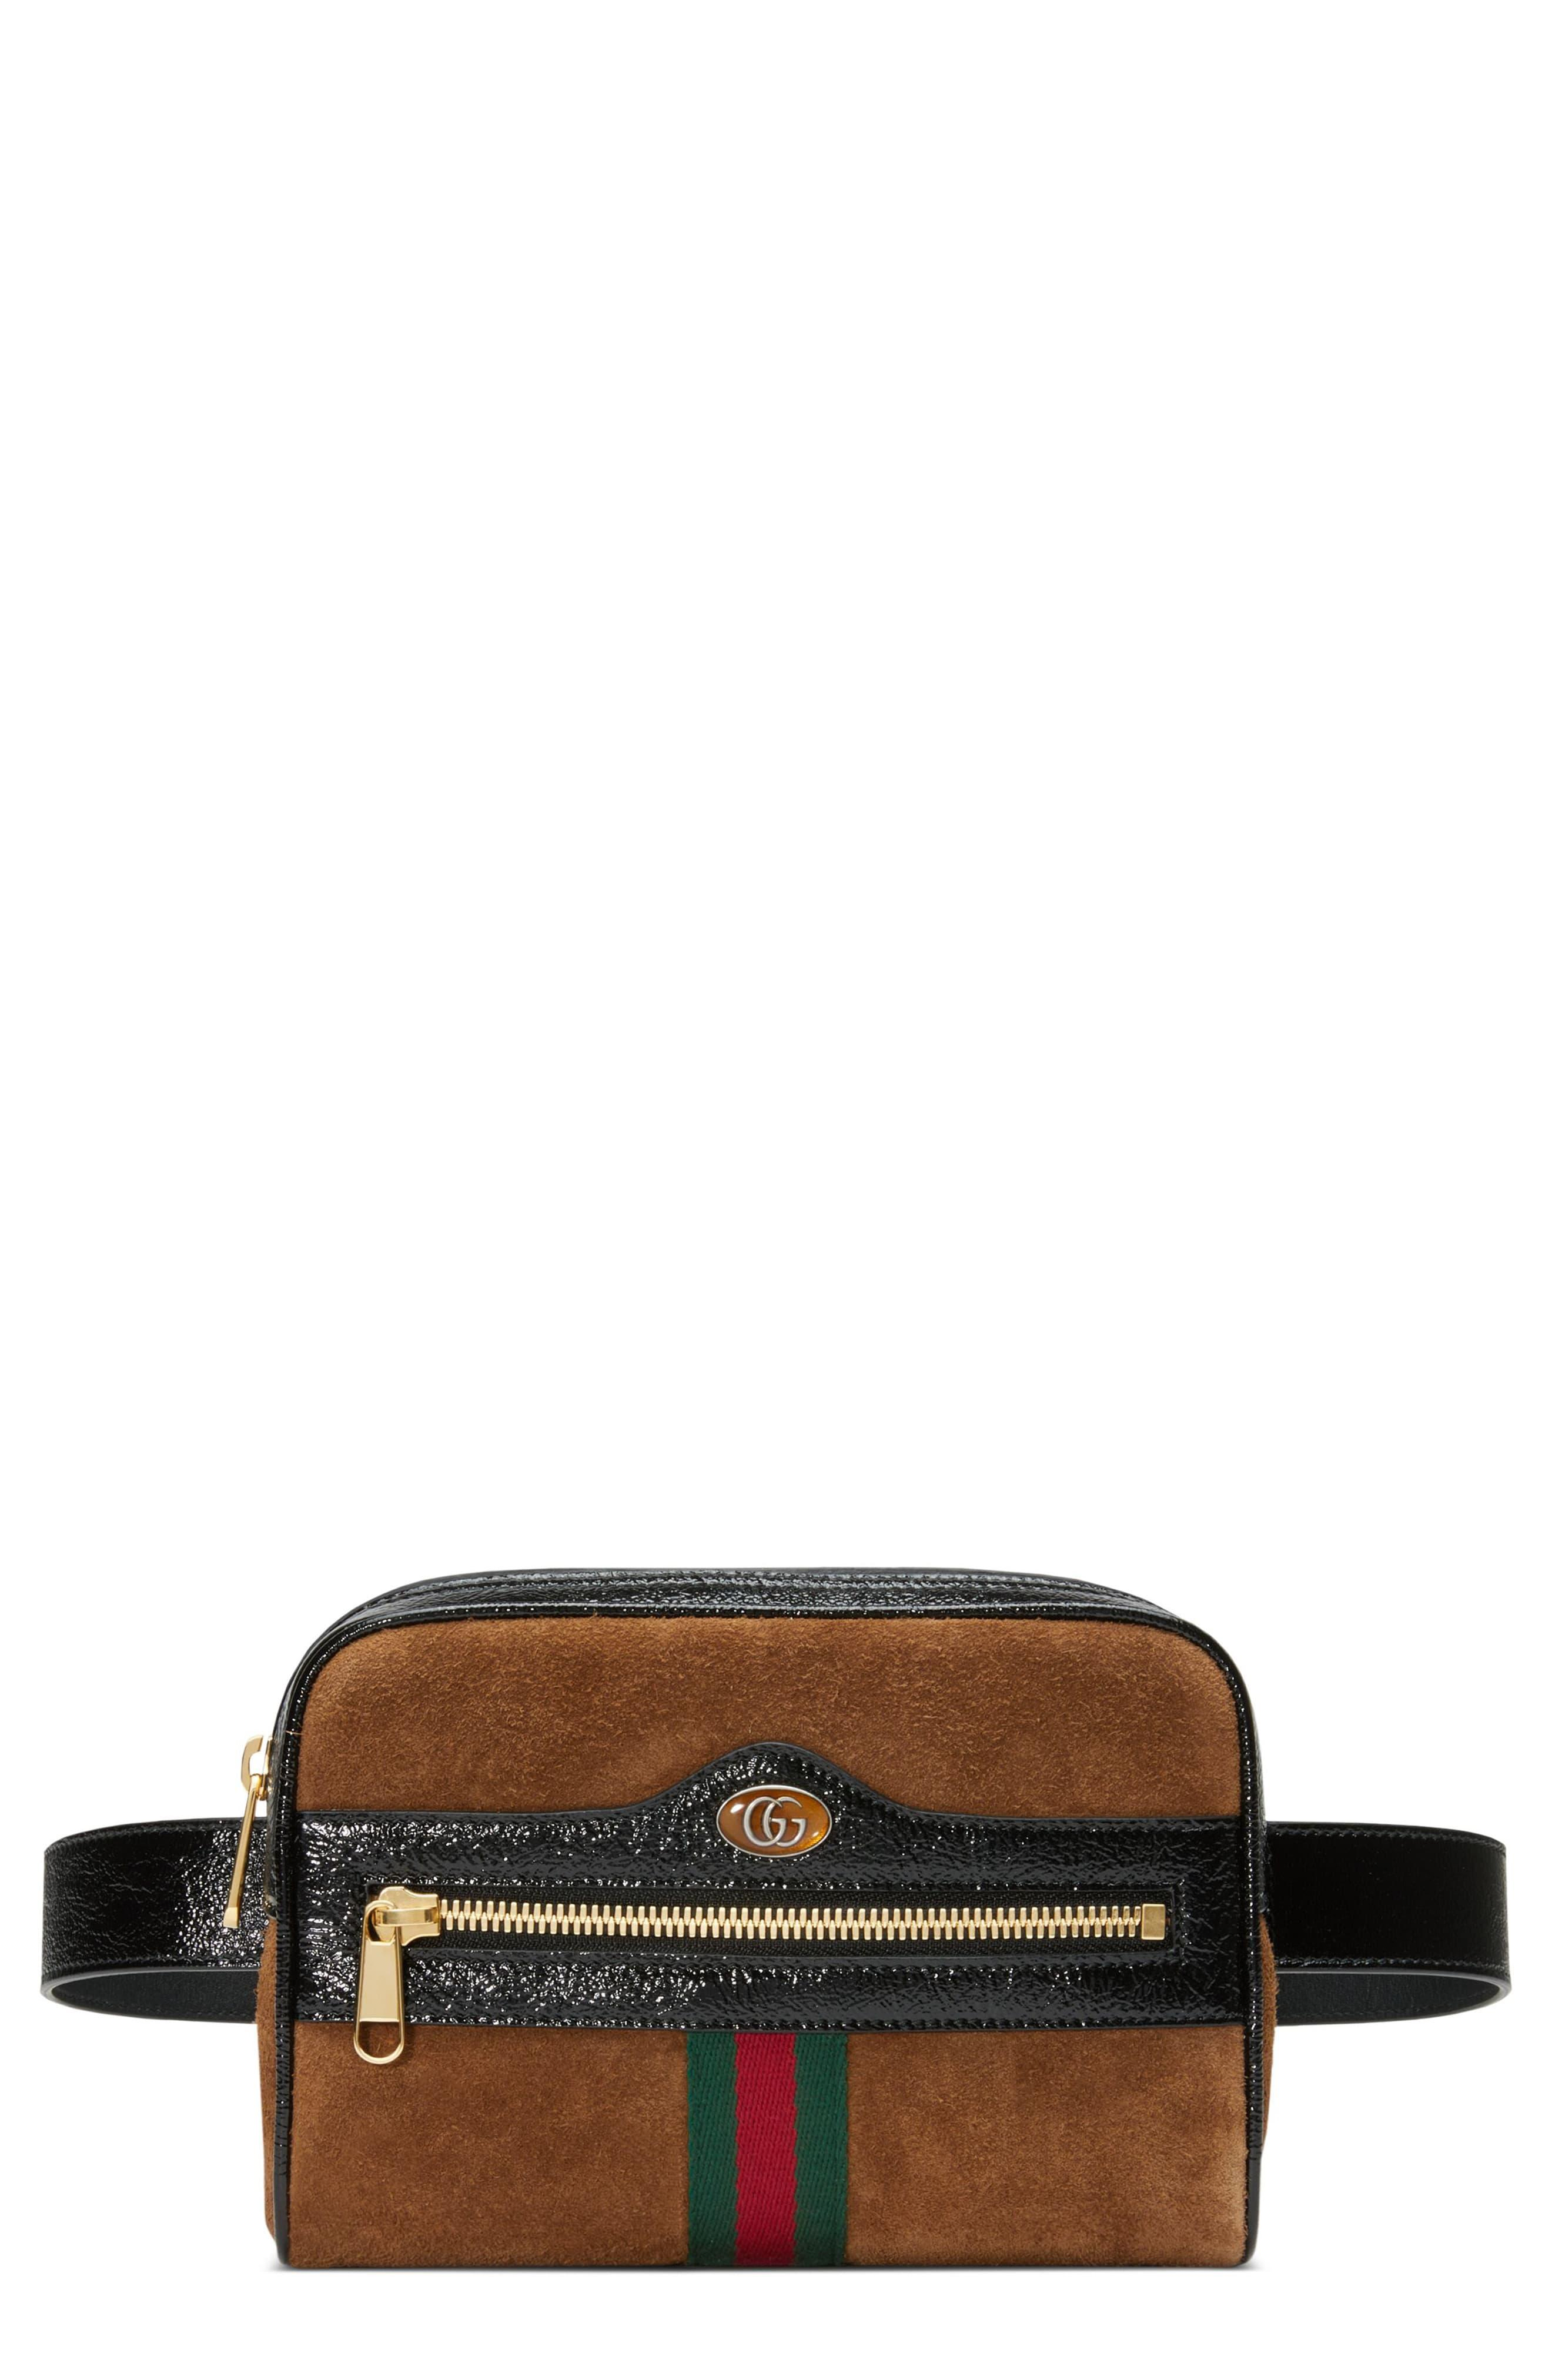 2951f996f90d2f Gucci Ophidia Small Suede Belt Bag in Red - Lyst